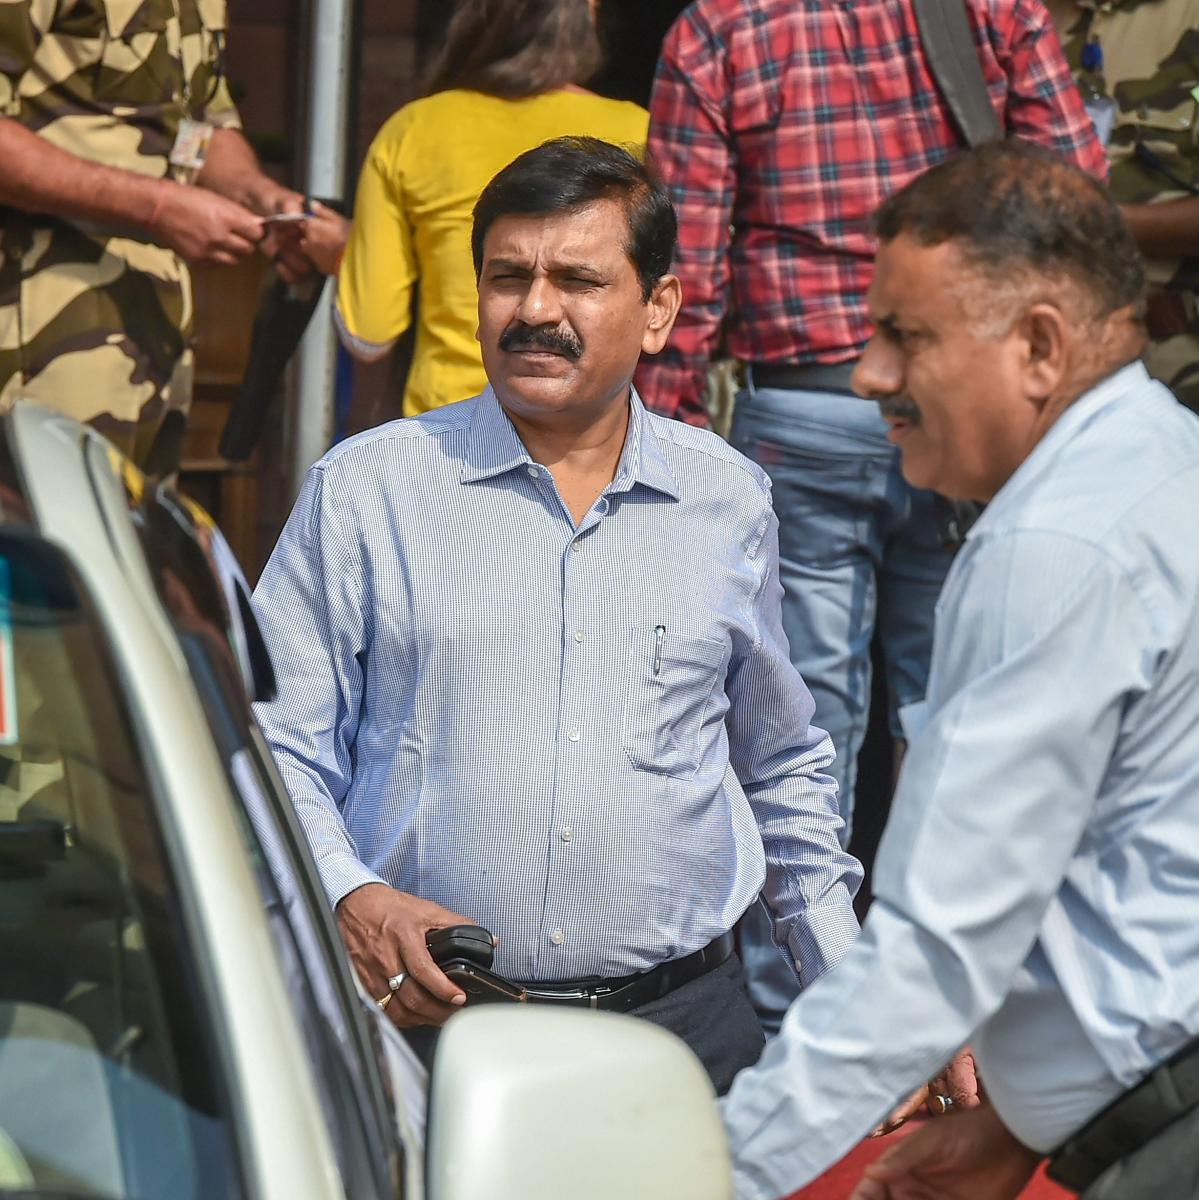 Interim director of the CBI M Nageswara Rao seen at Home Minister's office, in New Delhi, Thursday, Oct 25, 2018. The 1986 batch Odisha cadre IPS officer Rao, has been made interim director of the Central Bureau of Investigation (CBI) and is known for his